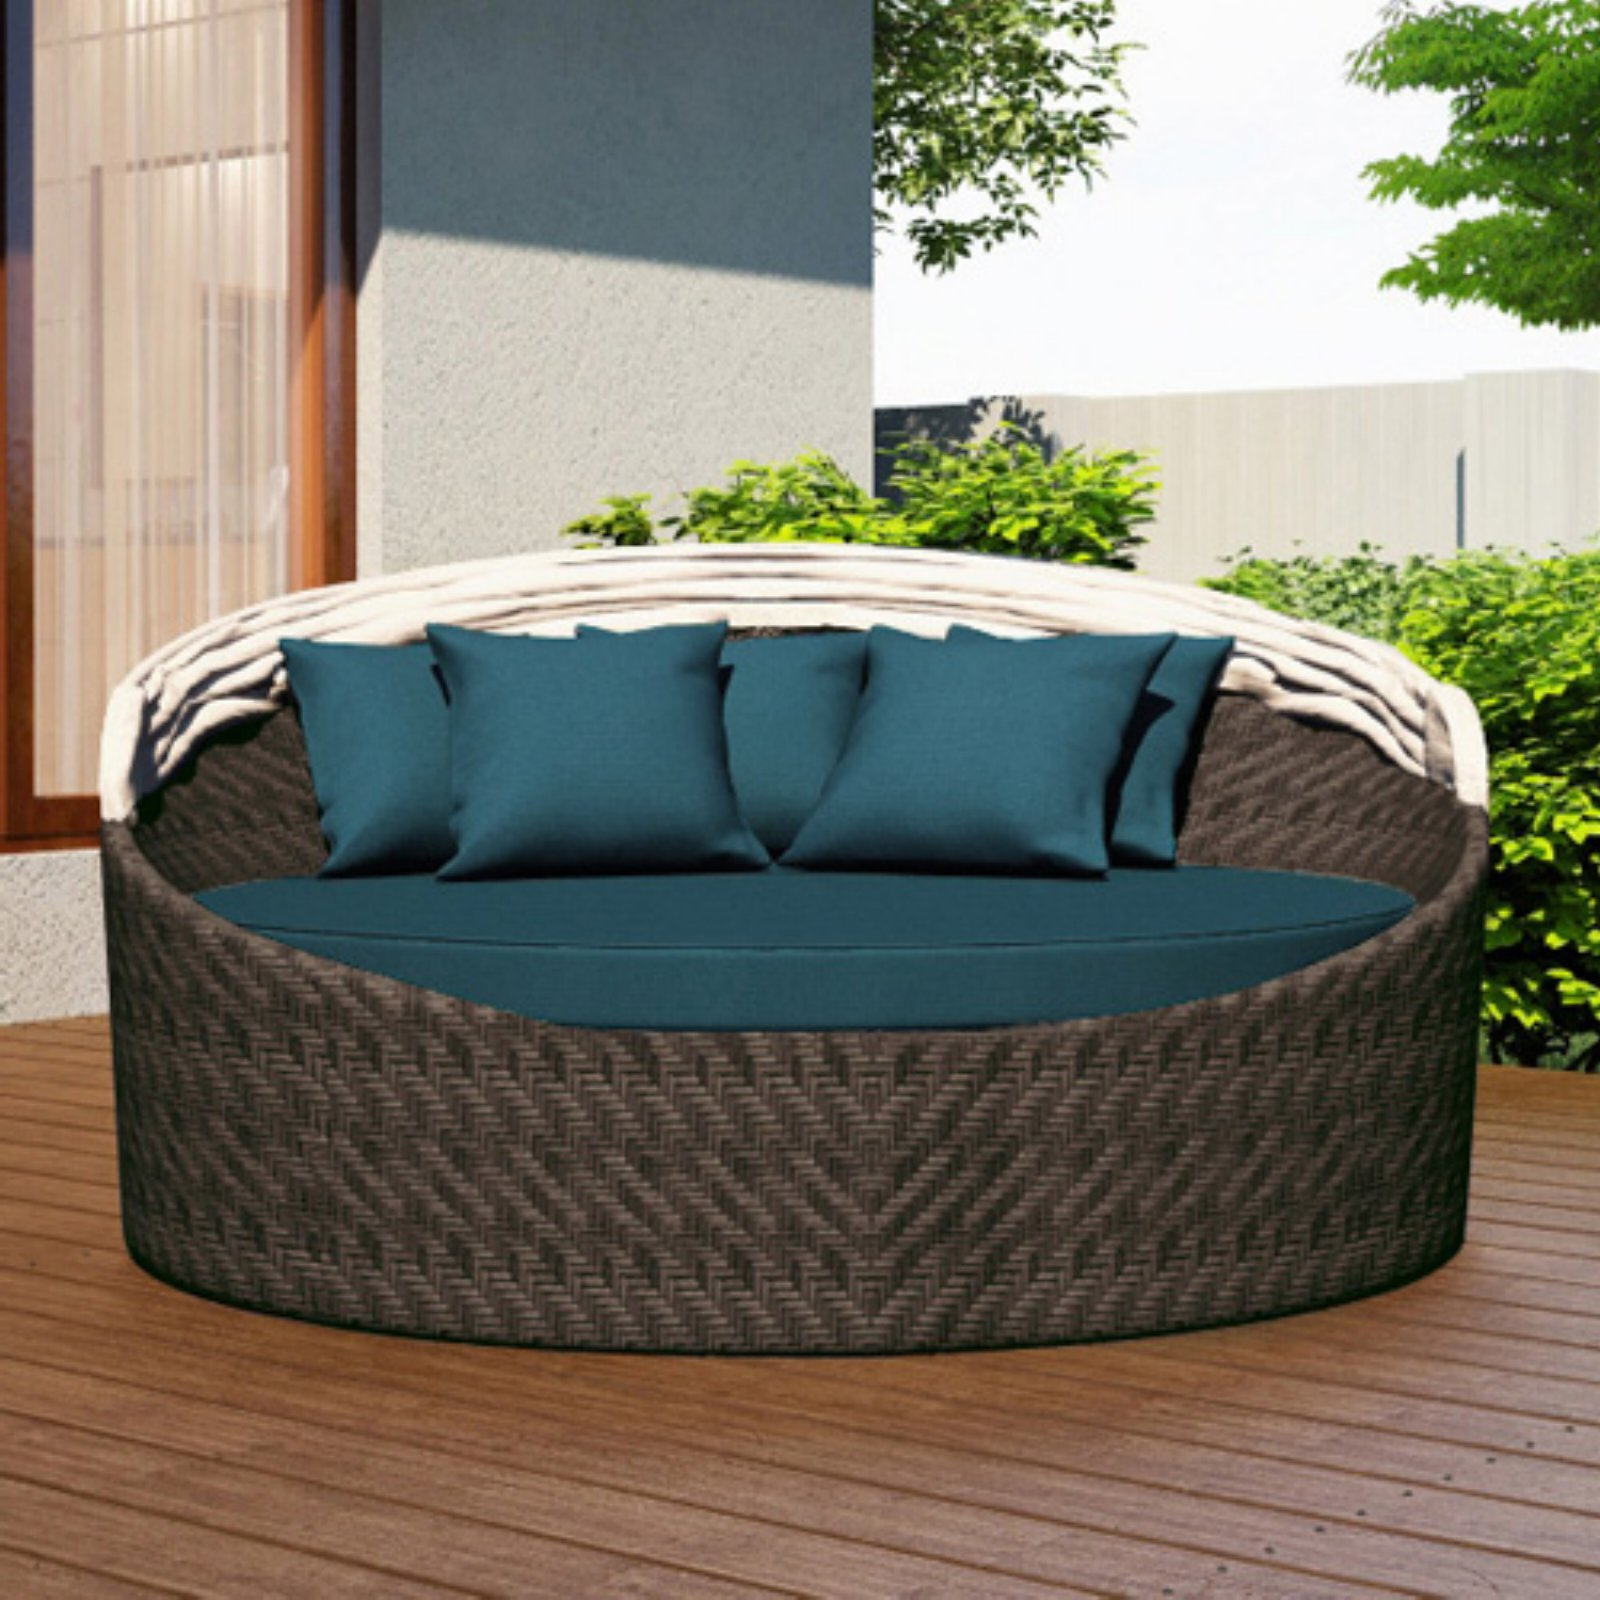 Most Up To Date Keiran Daybeds With Cushions In Harmonia Living Wink Outdoor Canopy Daybed Cast Lagoon (View 8 of 20)